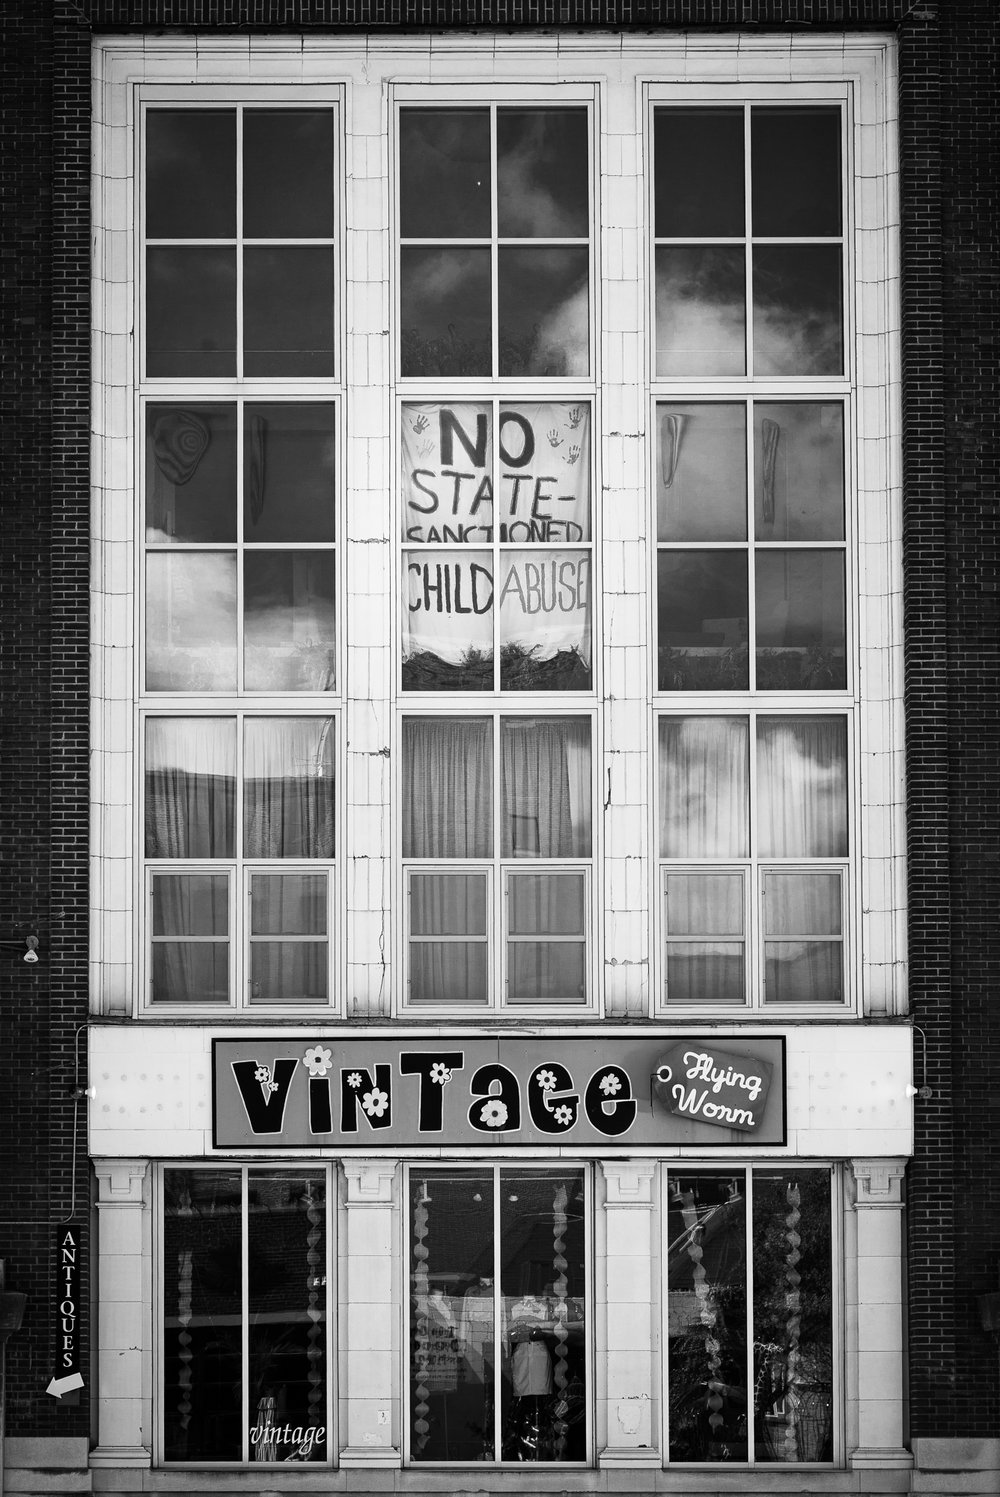 No State Sanctioned Child Abuse. Omaha. 2018.